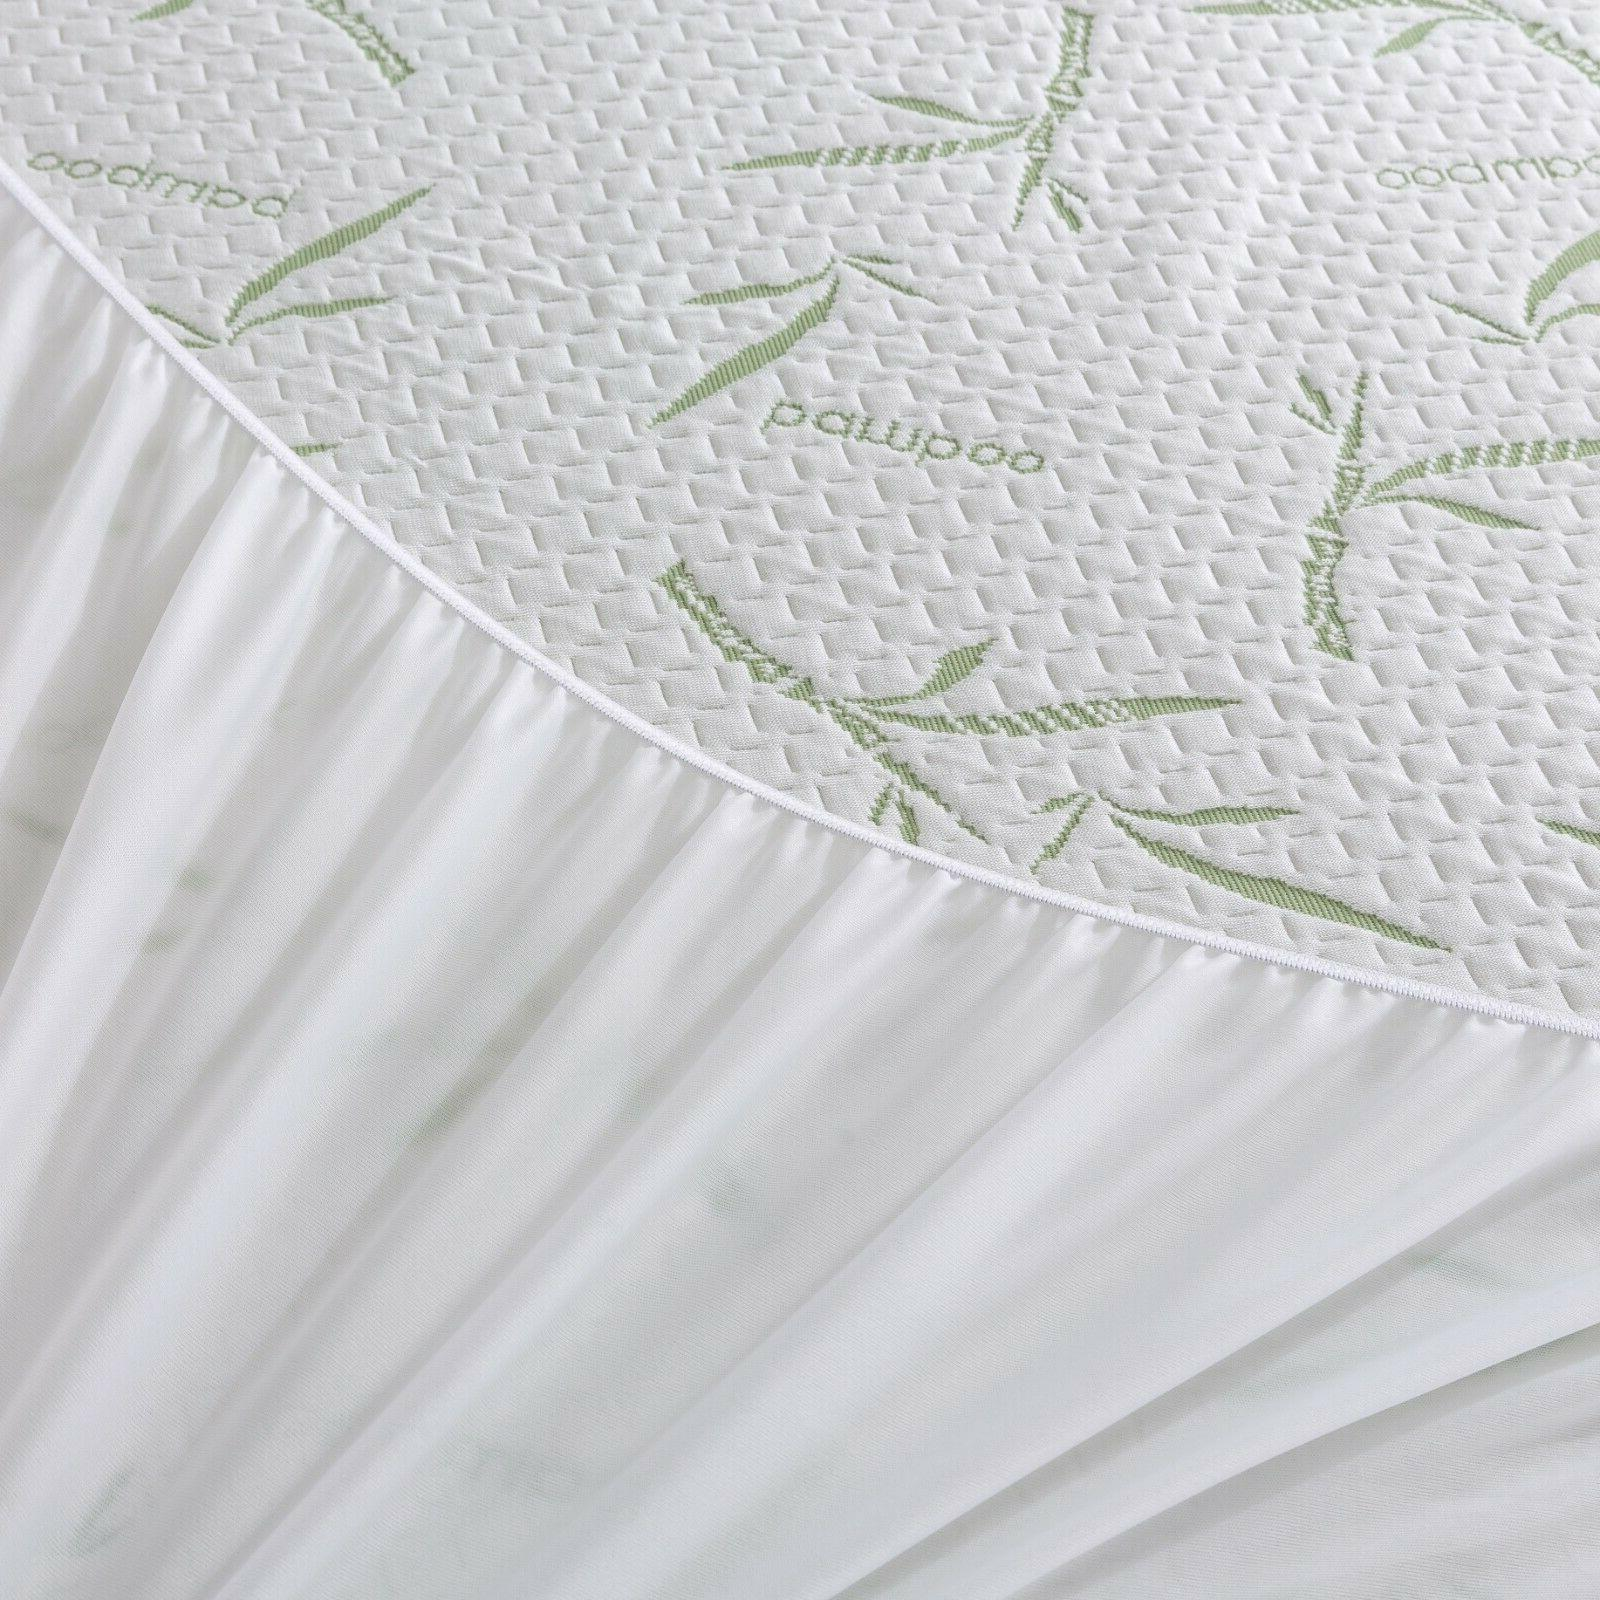 Waterproof Mattress Hypoallergenic Breathable Cover